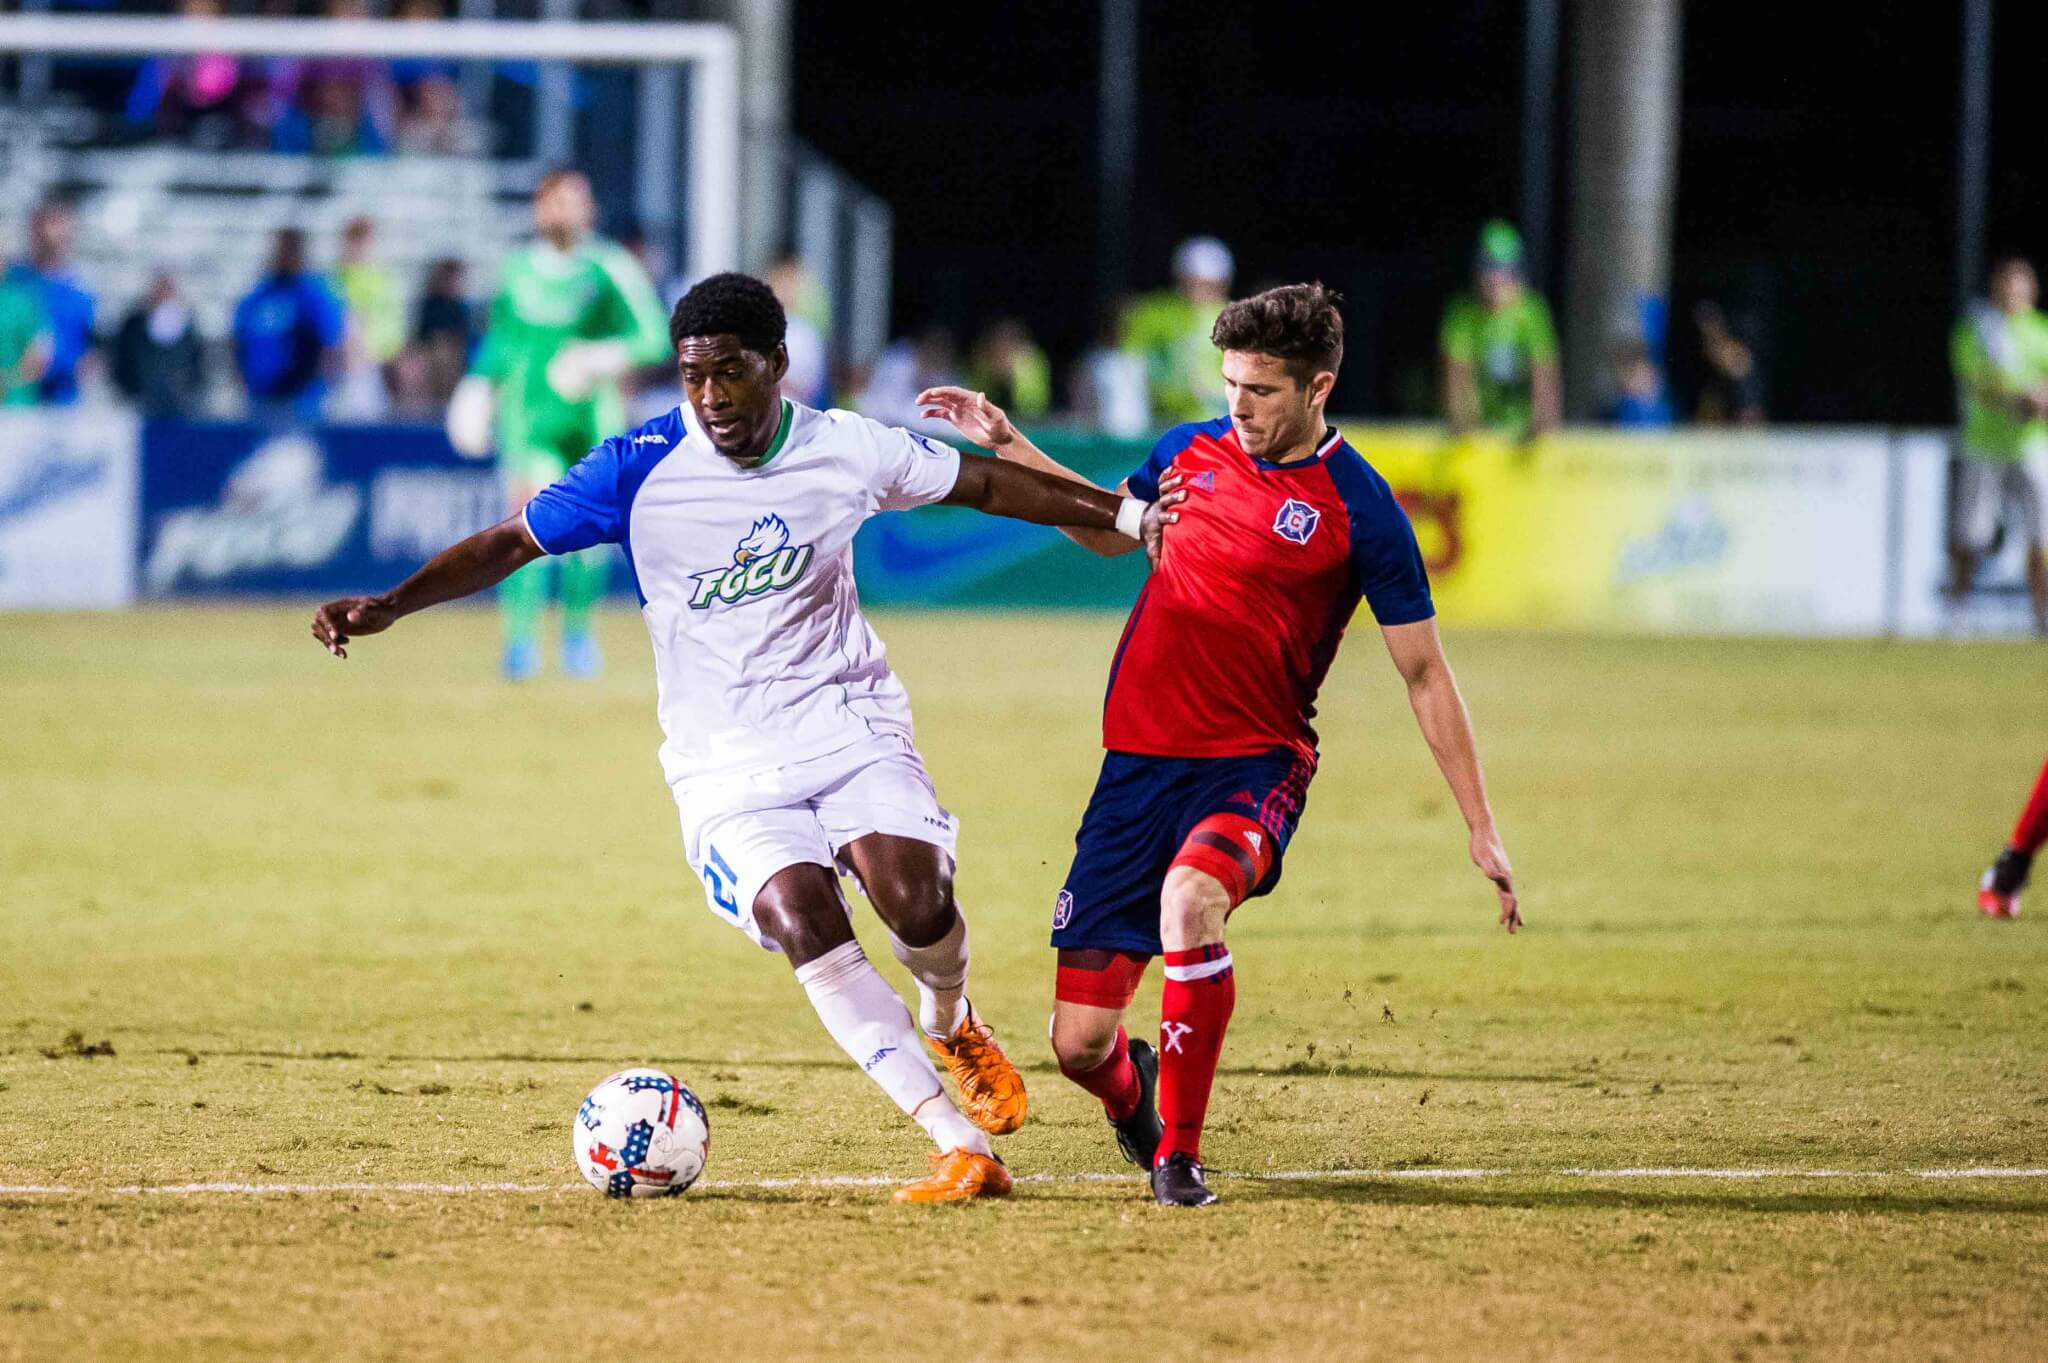 MLS team Chicago Fire holds preseason training camp at FGCU